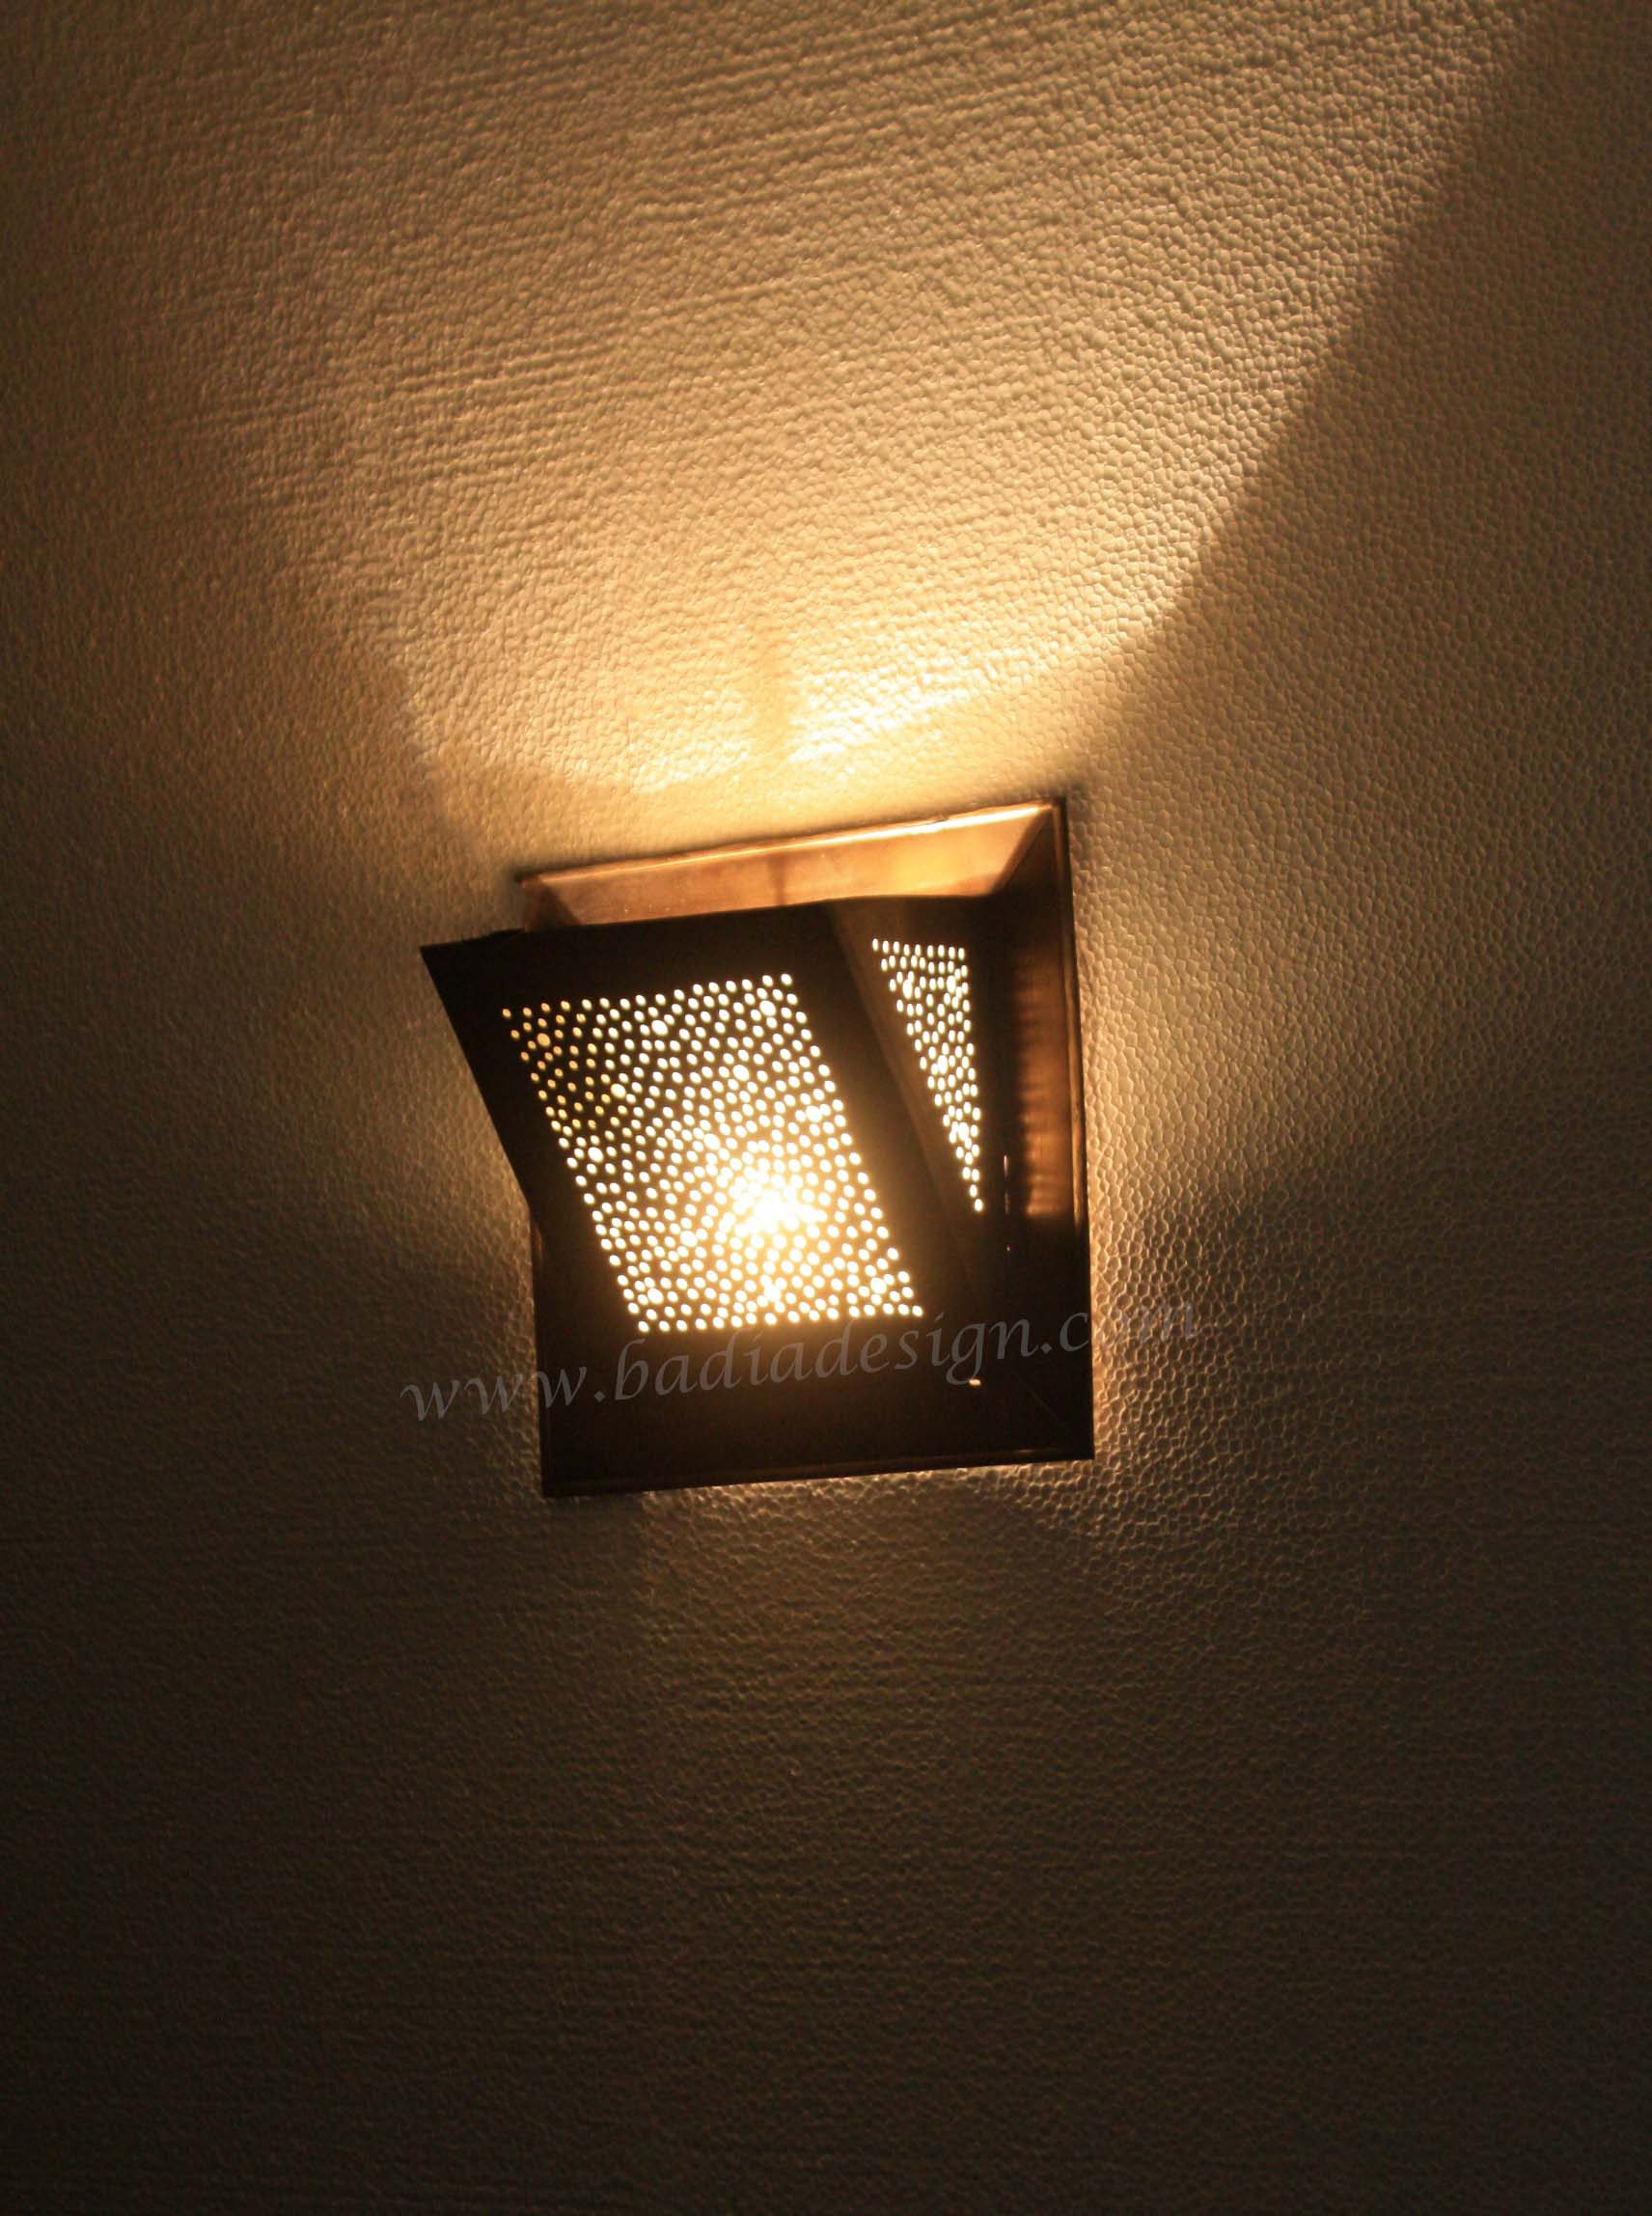 Small Moroccan Brass Wall Sconce from Badia Design Inc.